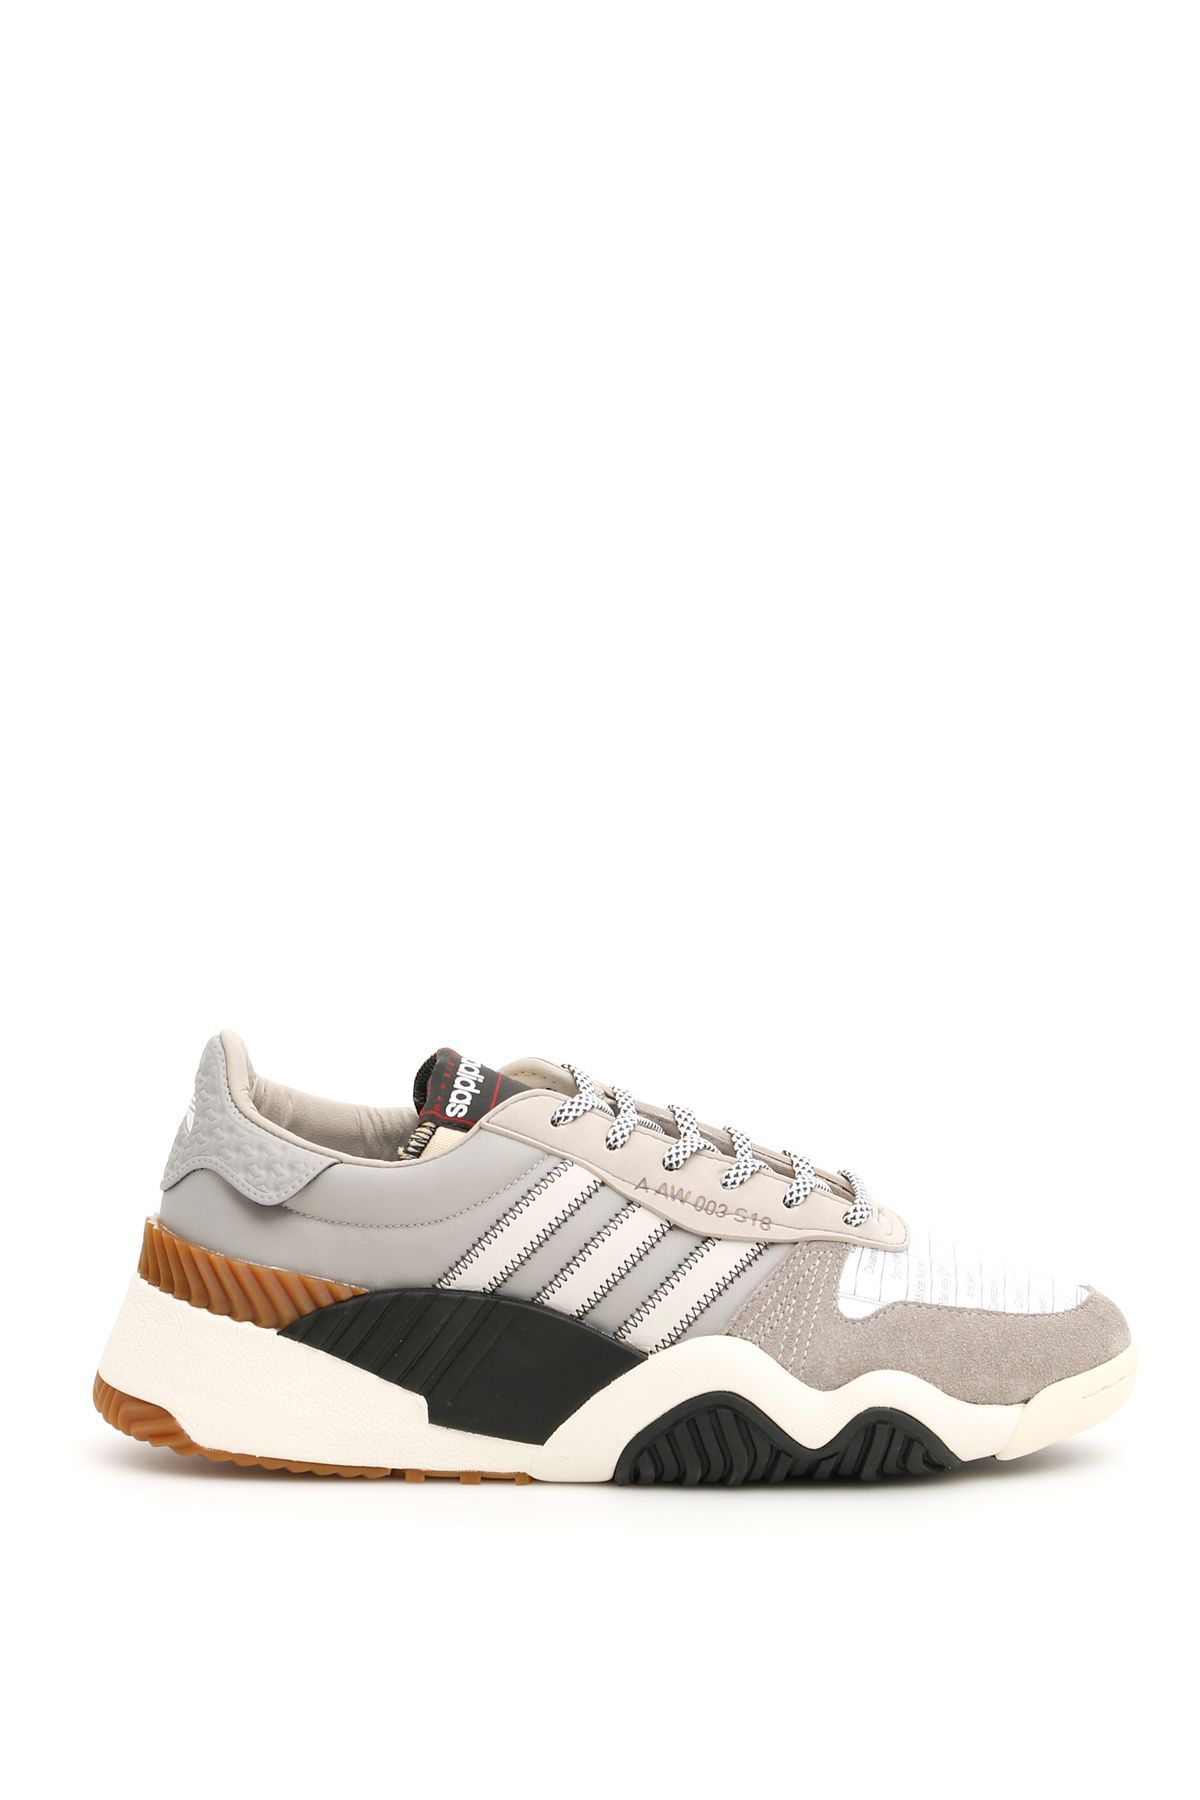 best sneakers a0a64 a753f ADIDAS ORIGINALS BY ALEXANDER WANG AW TURNOUT TRAINERS.  adidasoriginalsbyalexanderwang shoes